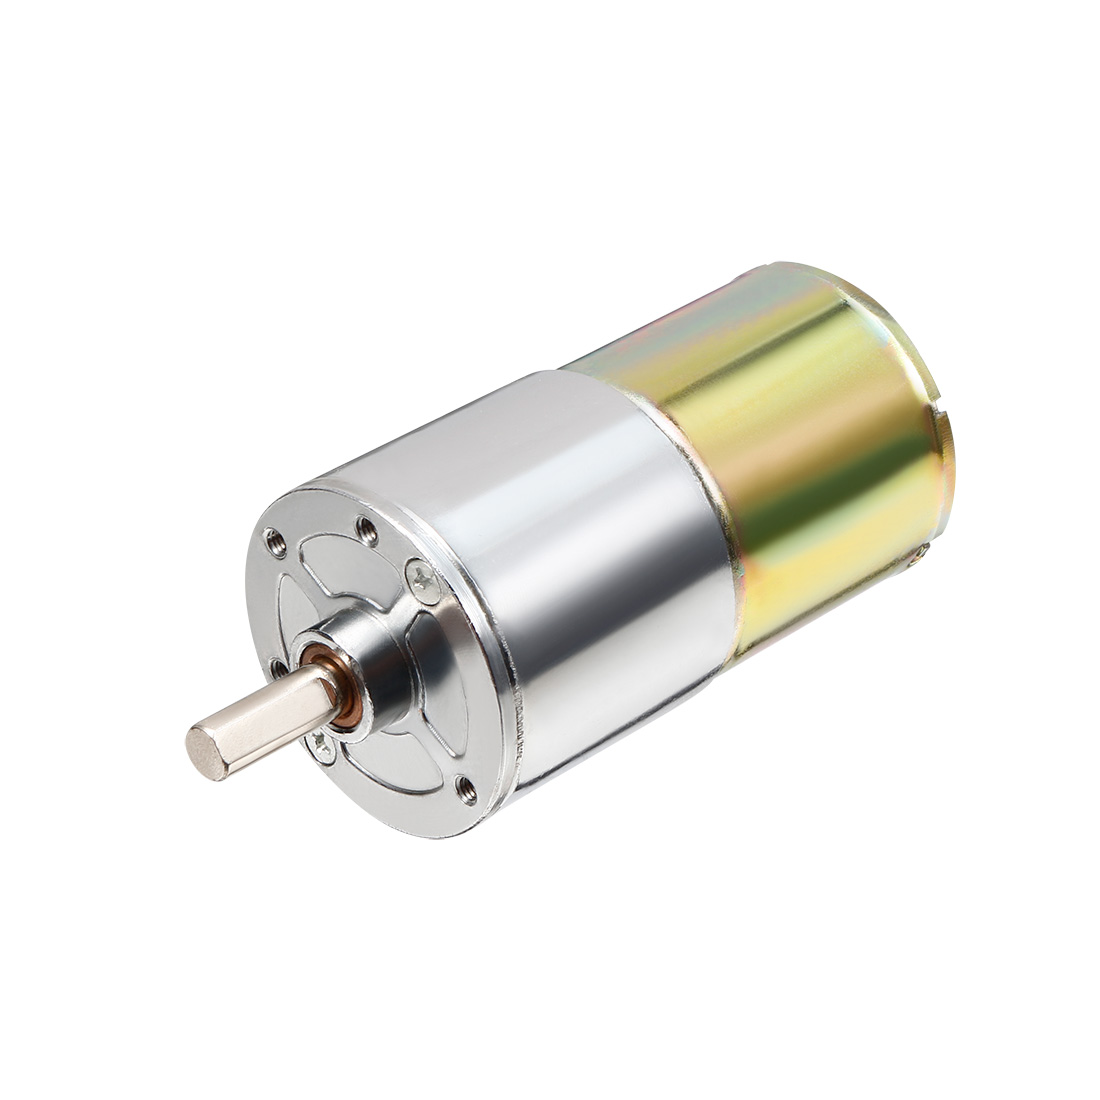 DC 12V 100RPM Micro Gear Box Motor Speed Reduction Electric Gearbox Centric Output Shaft